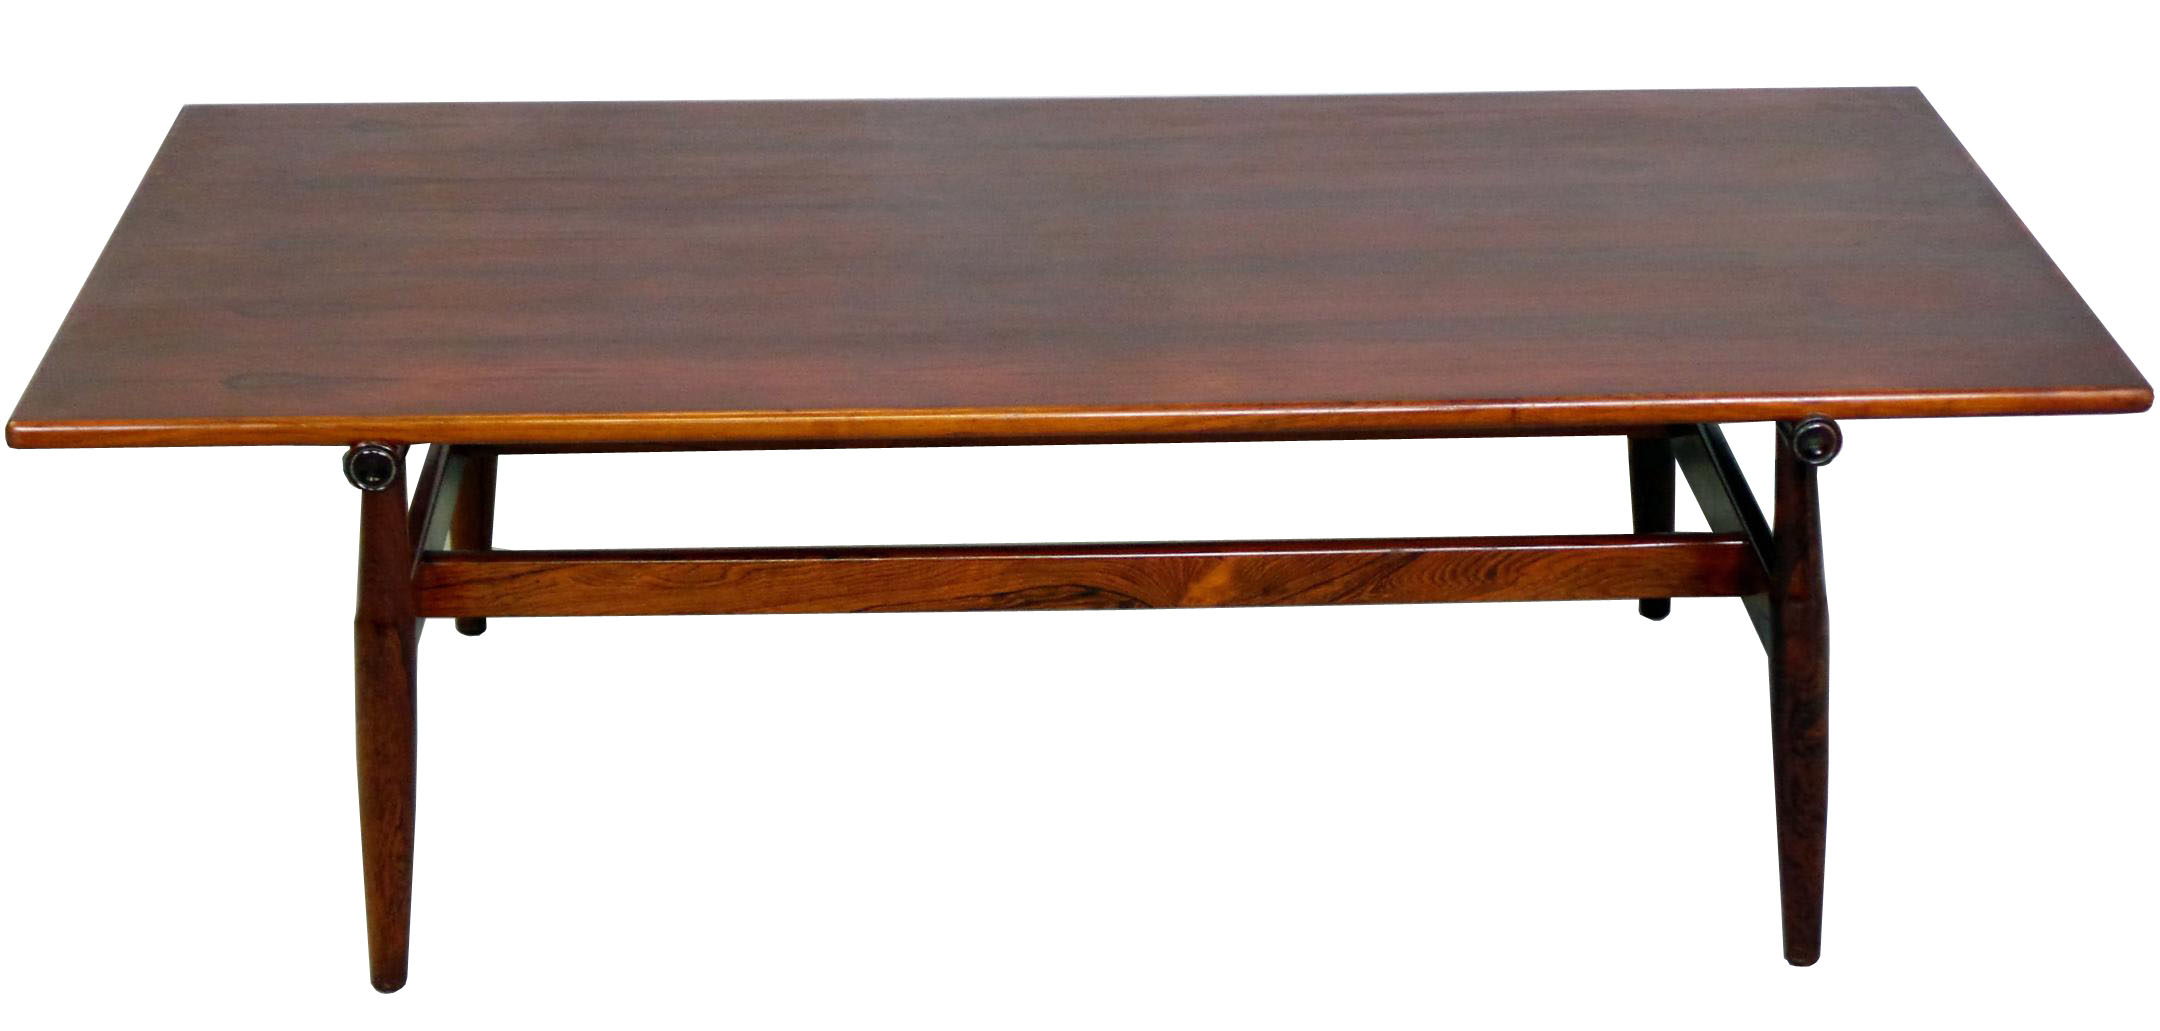 Danish Modern Rosewood Coffee Table 1960 39 S Modernism